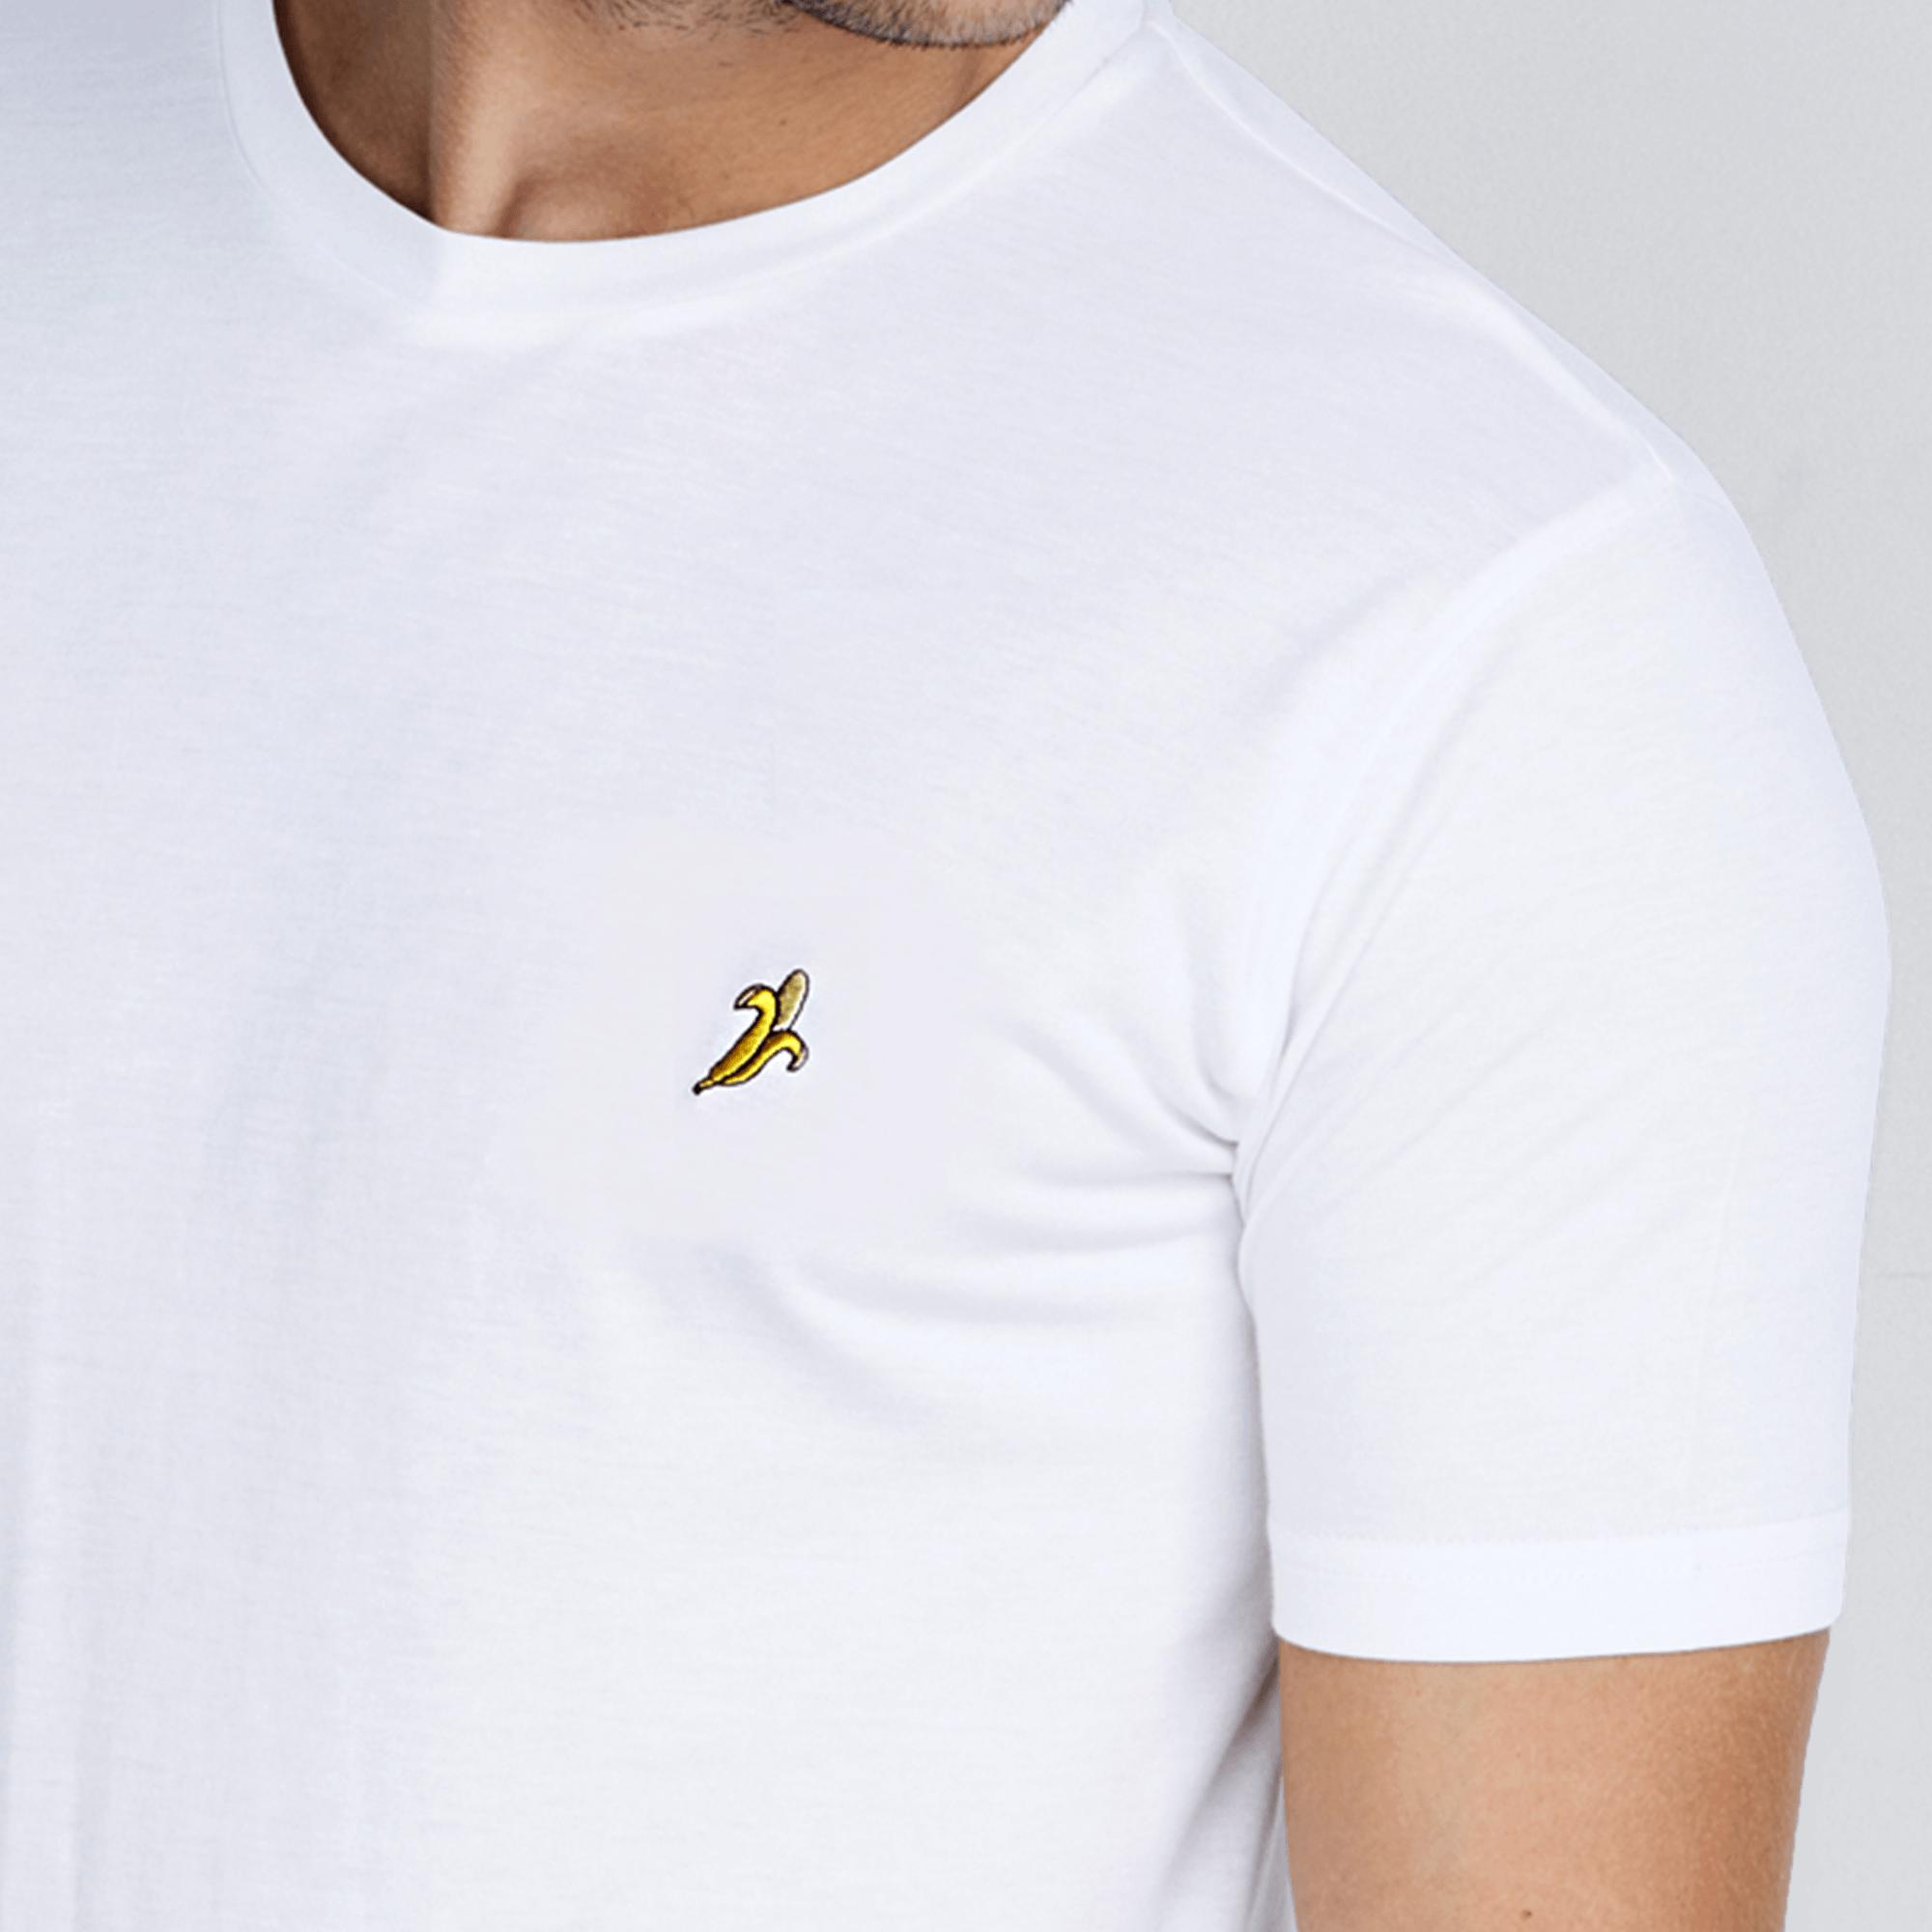 Banana Signature T-shirt